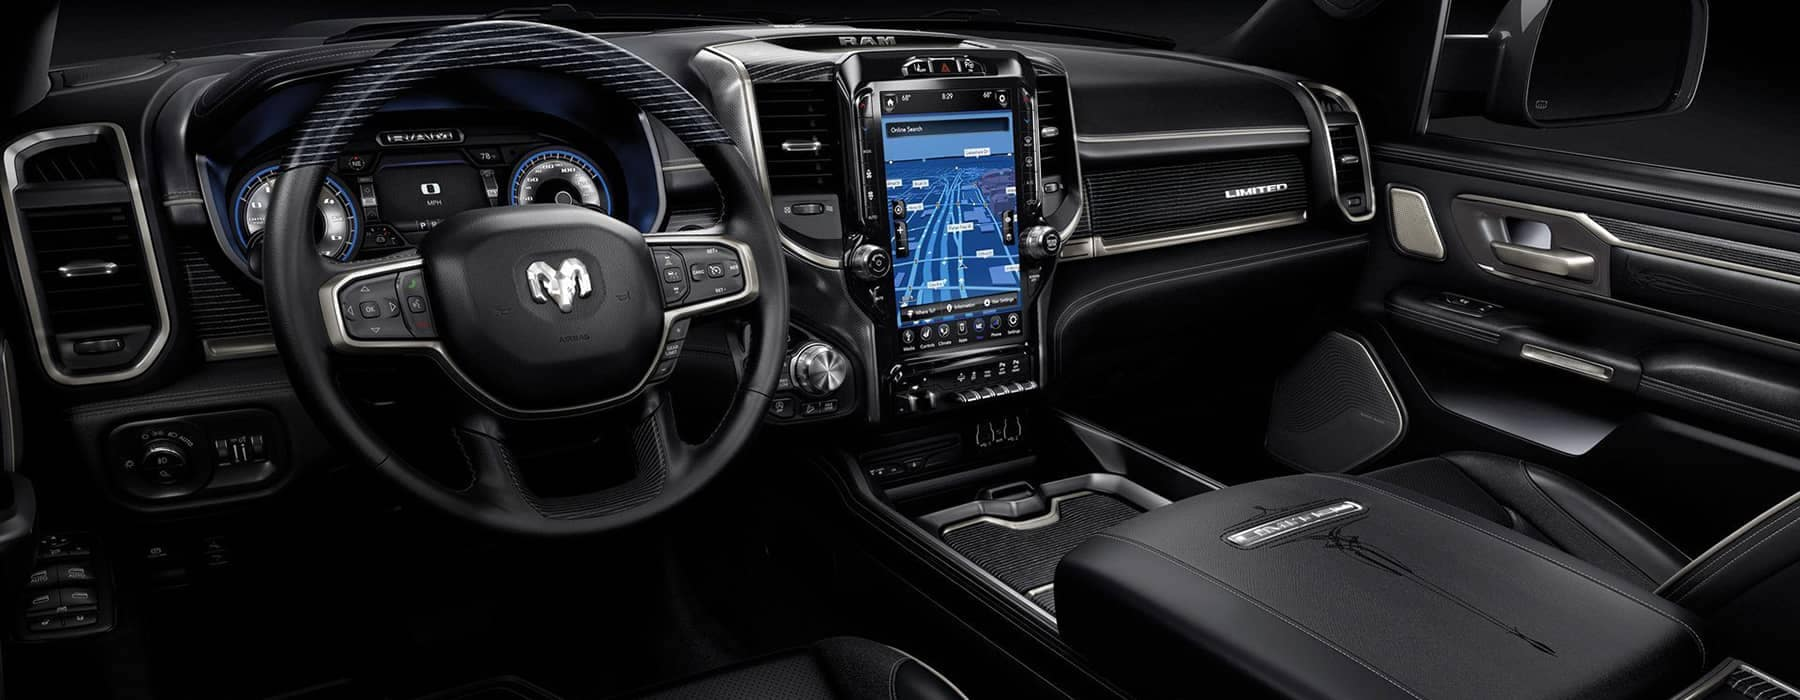 Why You Need Uconnect | Android Auto | Apple CarPlay ...